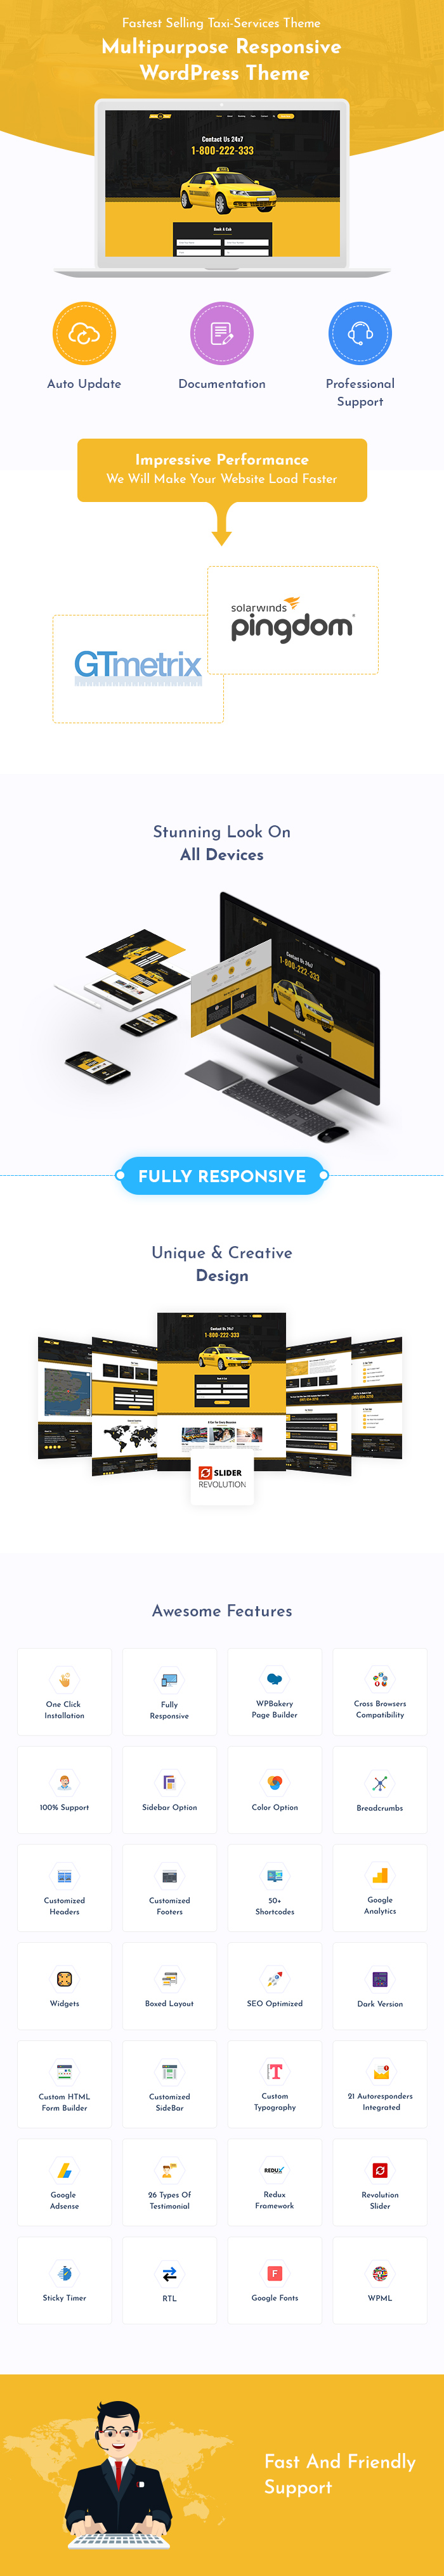 Taxi & Cab Services WordPress Themes